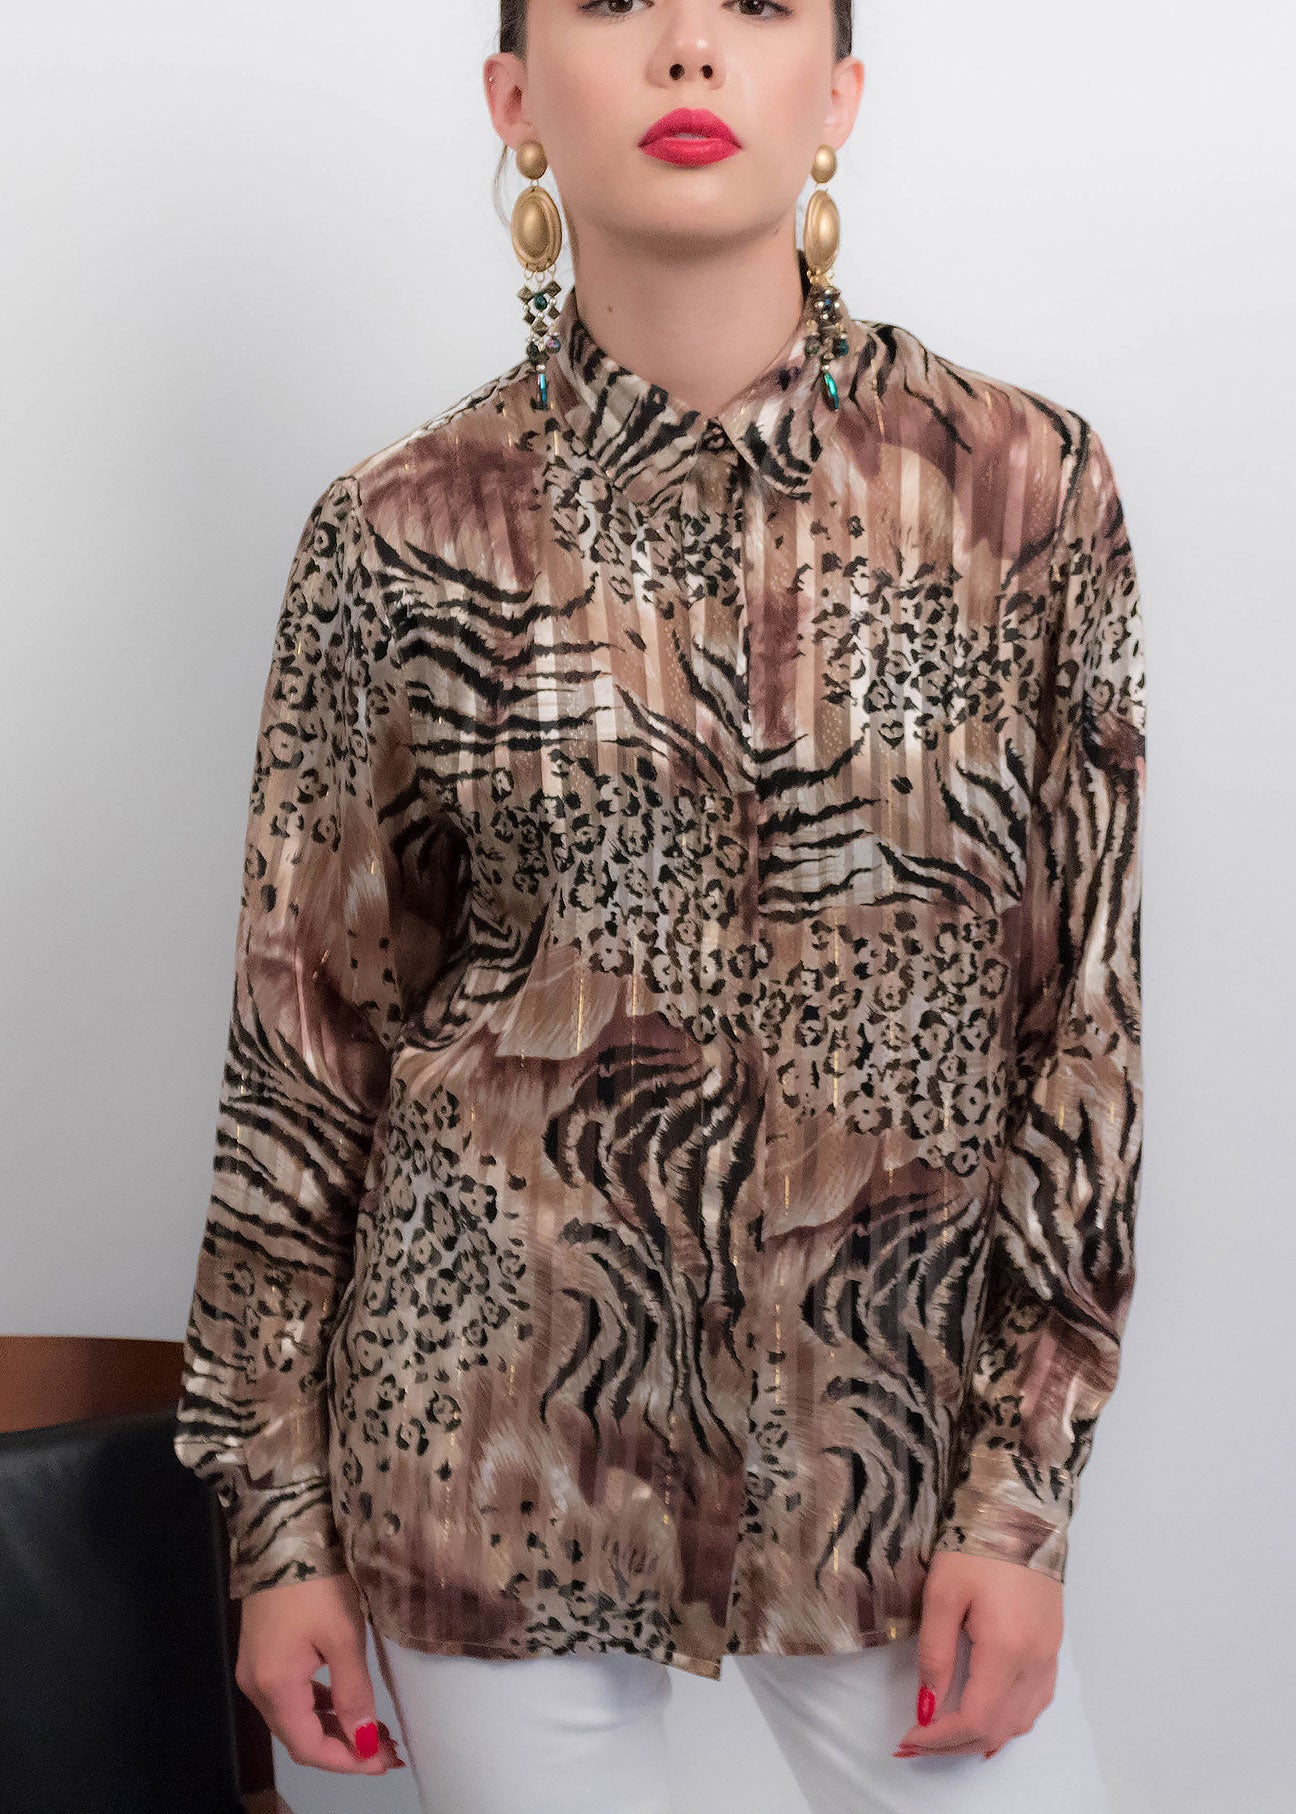 90s Leopard Print Sheer Blouse